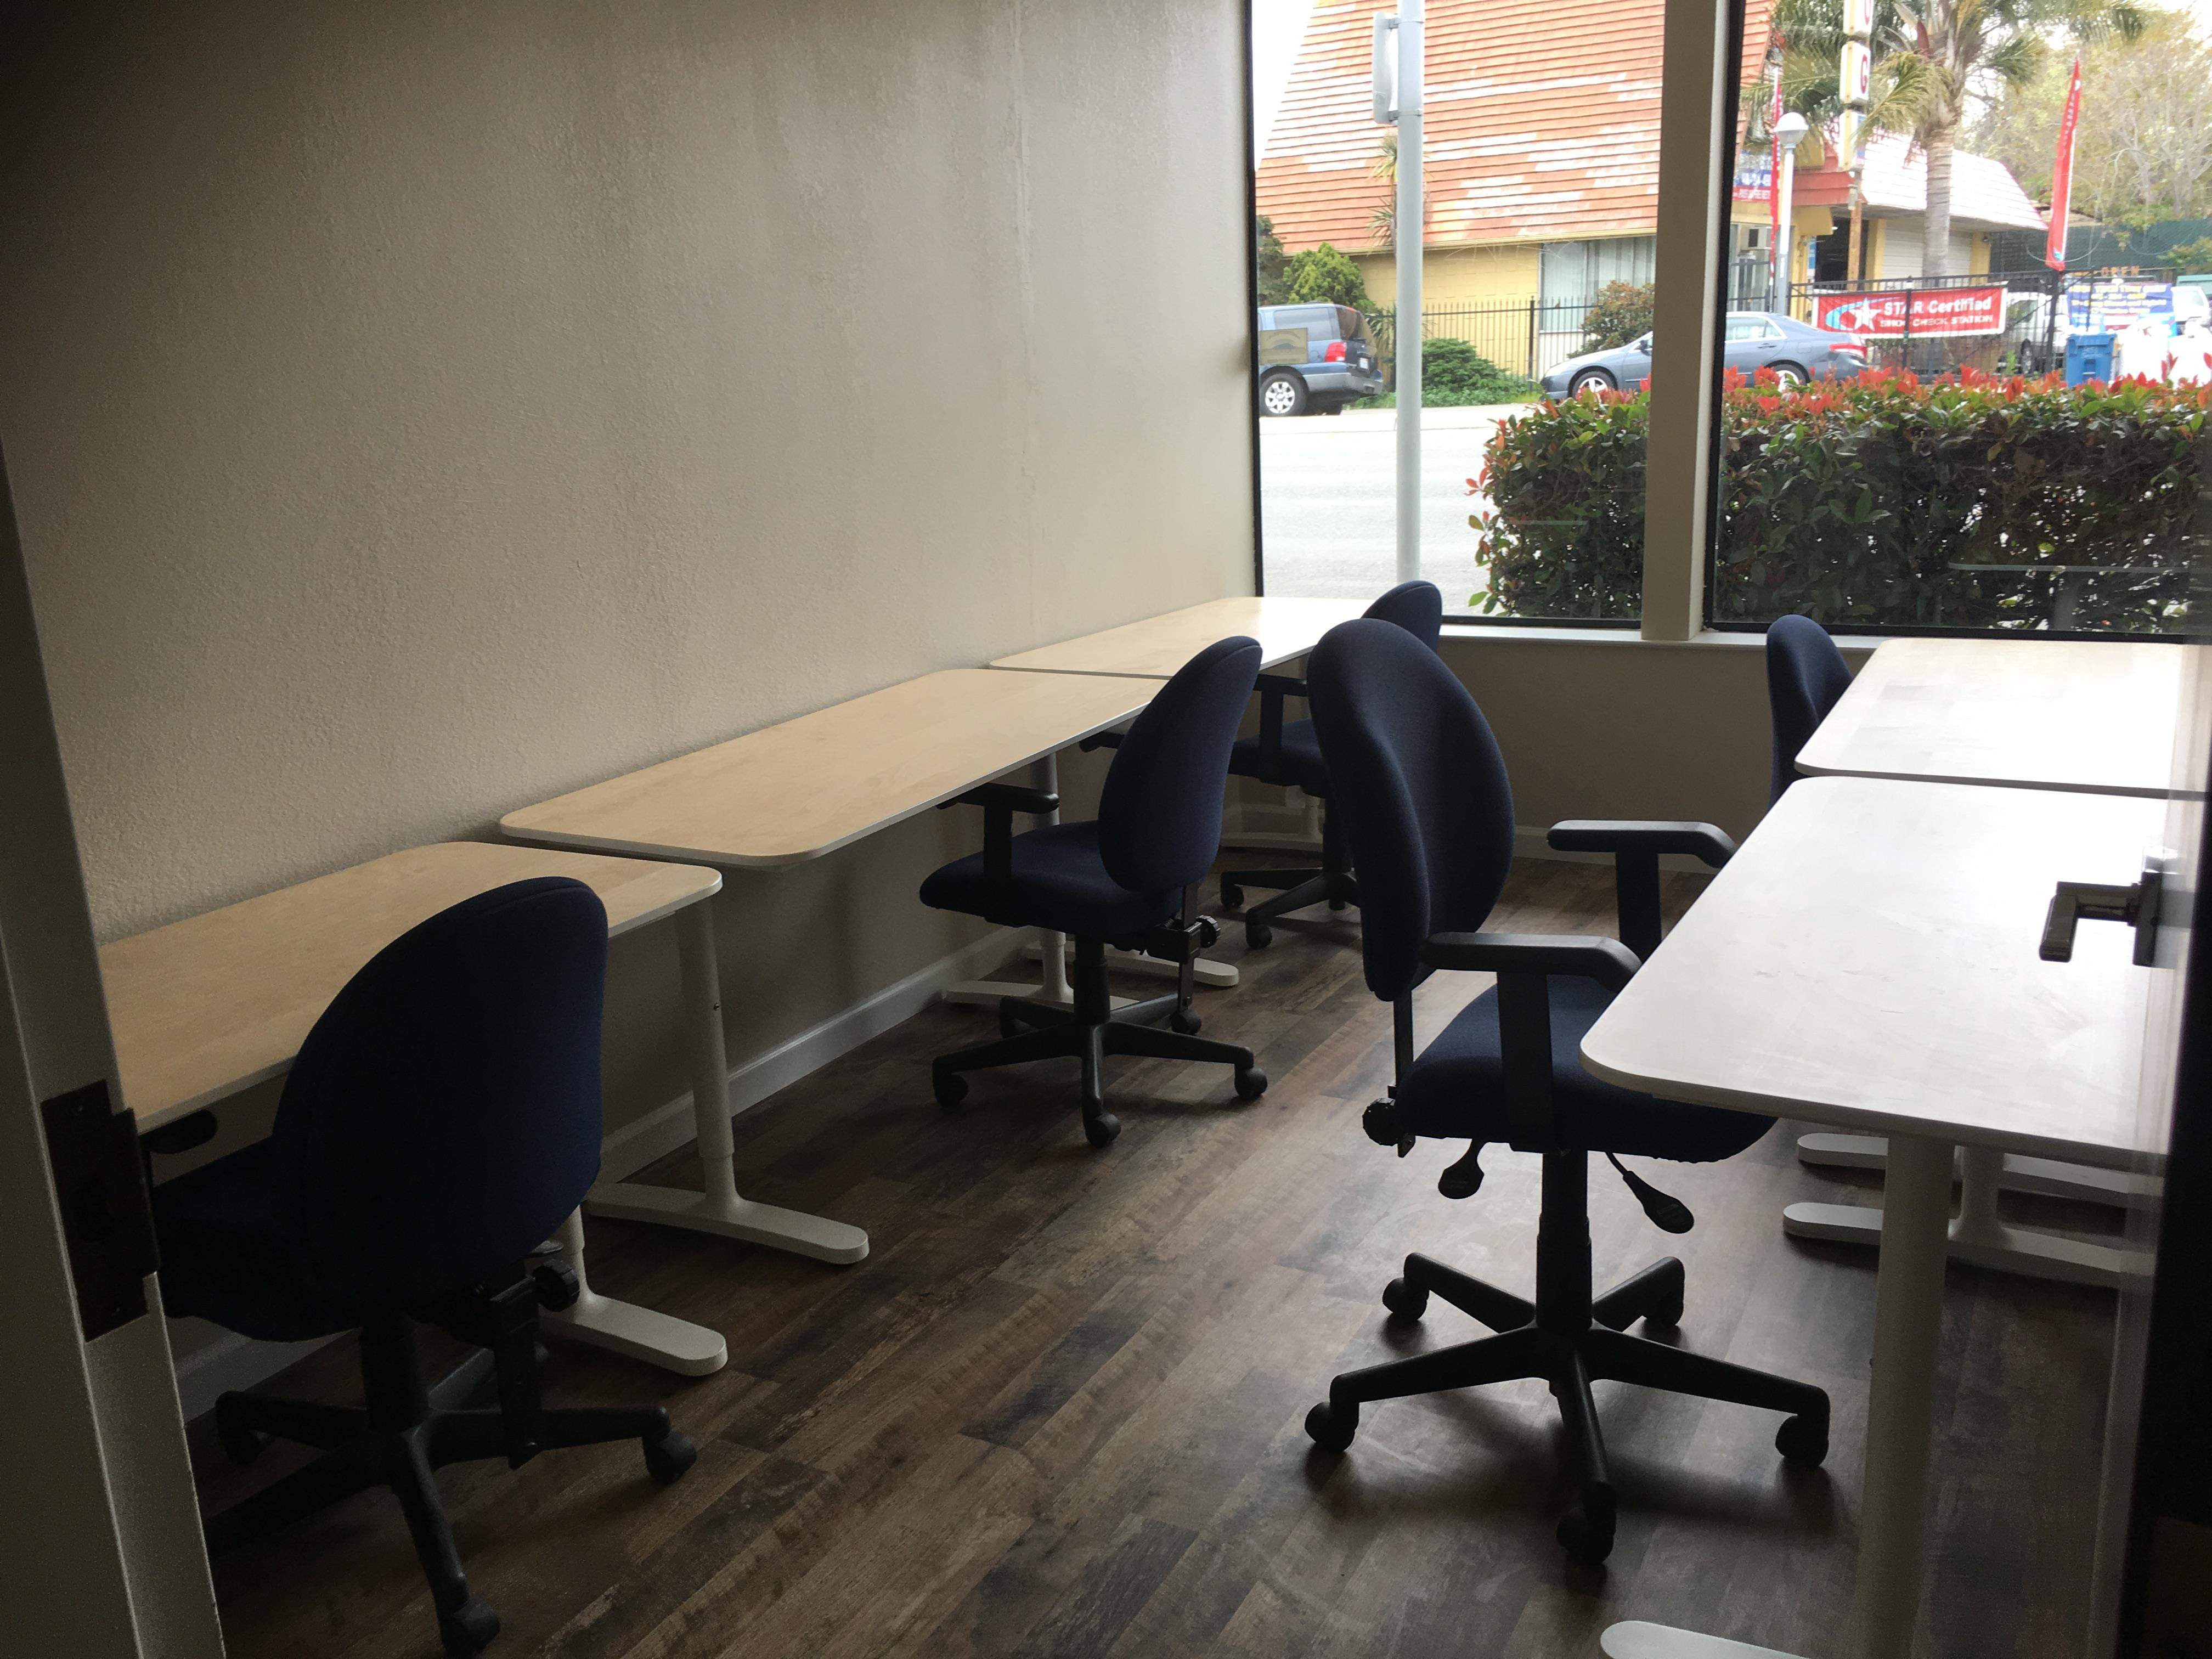 ActionSpot Co-working /Shared Office Space - Office Suite #106